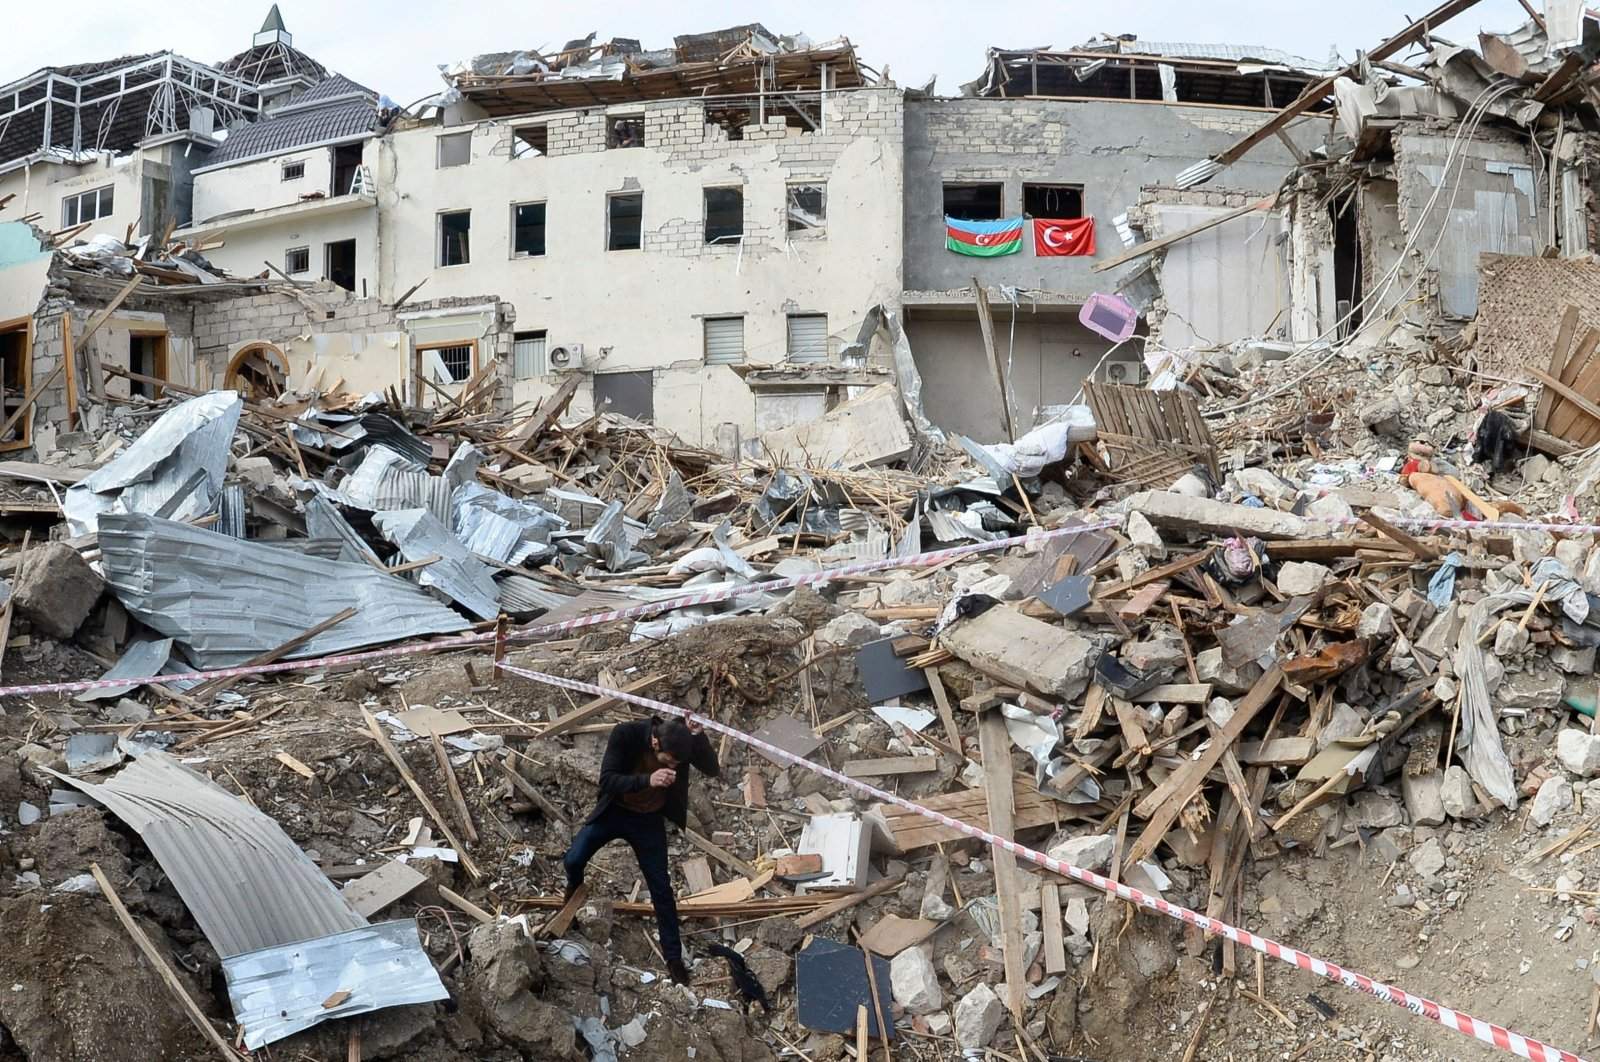 A man walks among the debris of destroyed buildings hit by Armenian shelling, in a residential area of the city of Ganja, Azerbaijan, on Oct. 22, 2020. (AFP Photo)